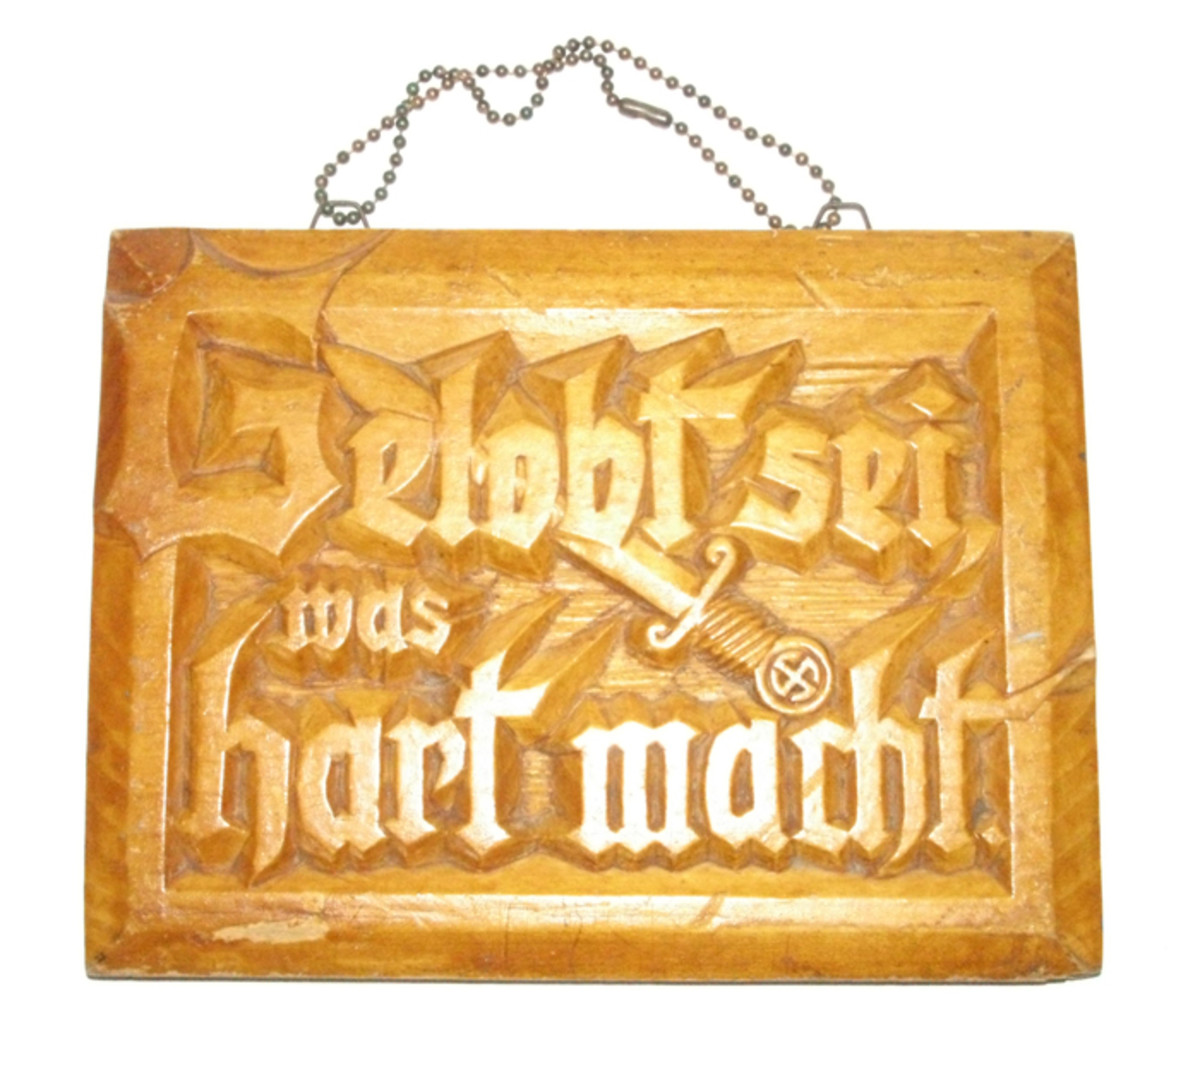 This was carved by a Buchenwald Concentration Camp inmate who put his name and date on the reverse.